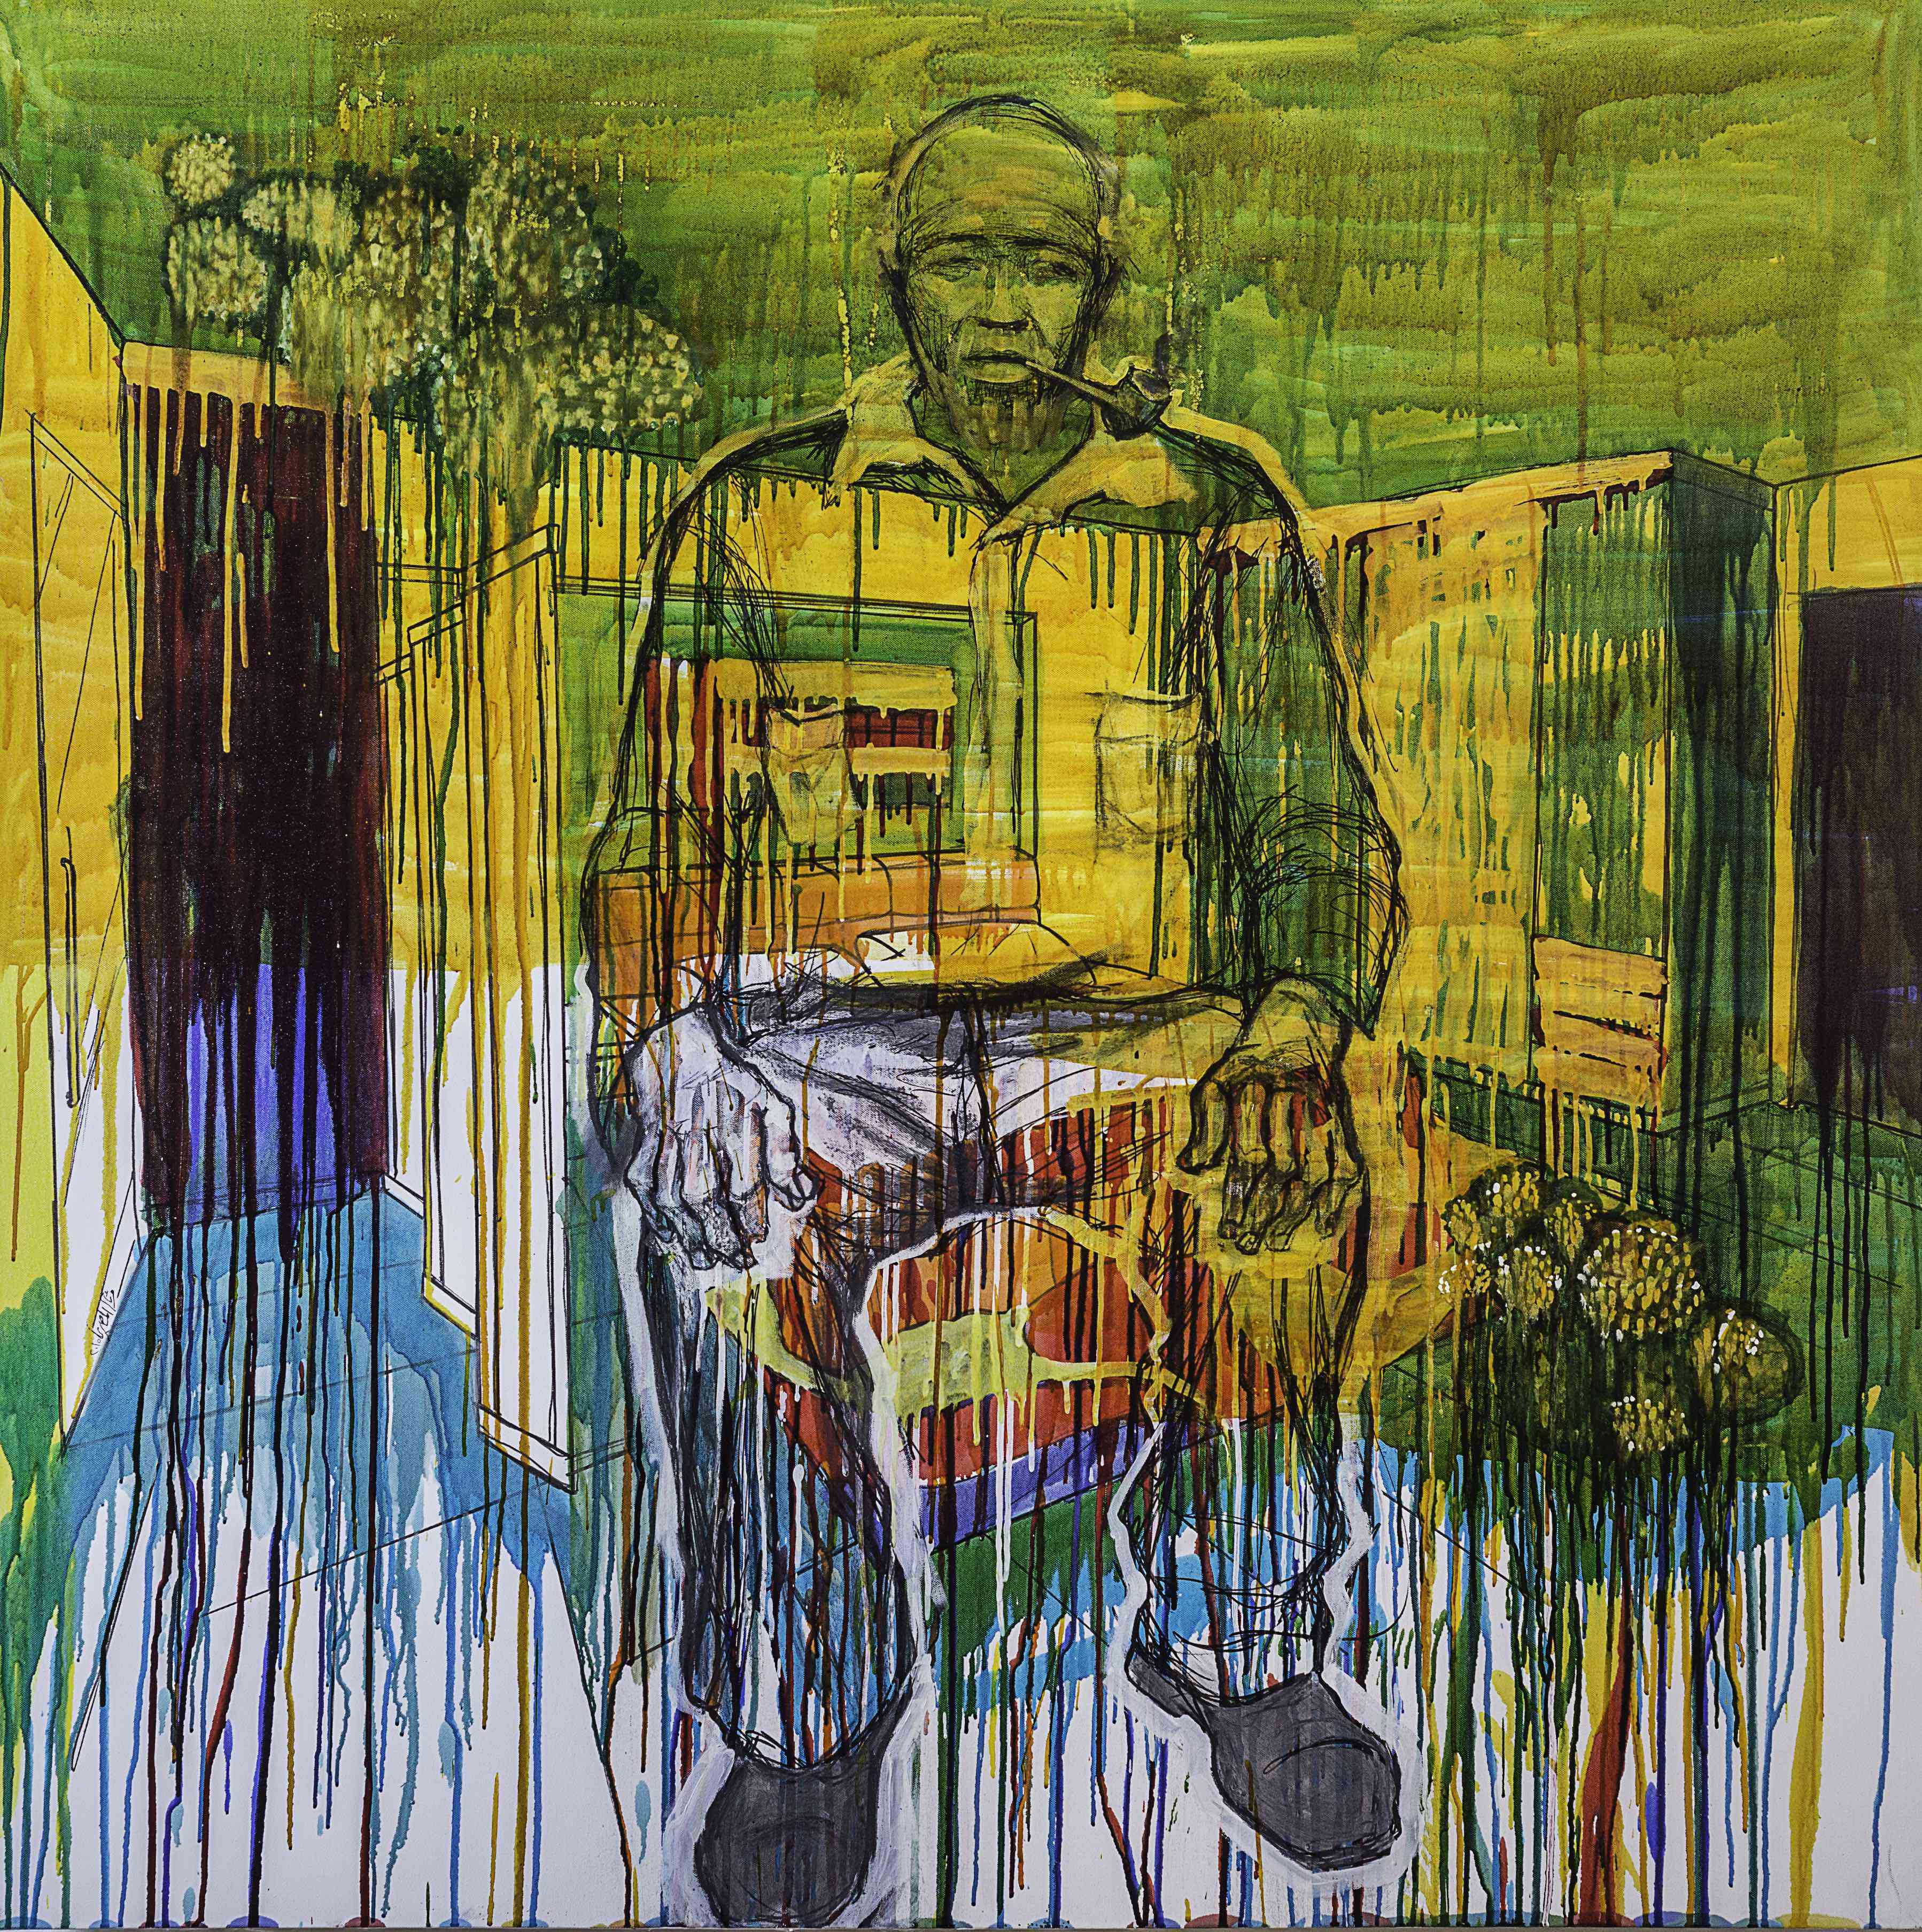 Weaam El Masry Spring-well of Sorrow, 2015 mixed media on canvas 150 x 150 cm